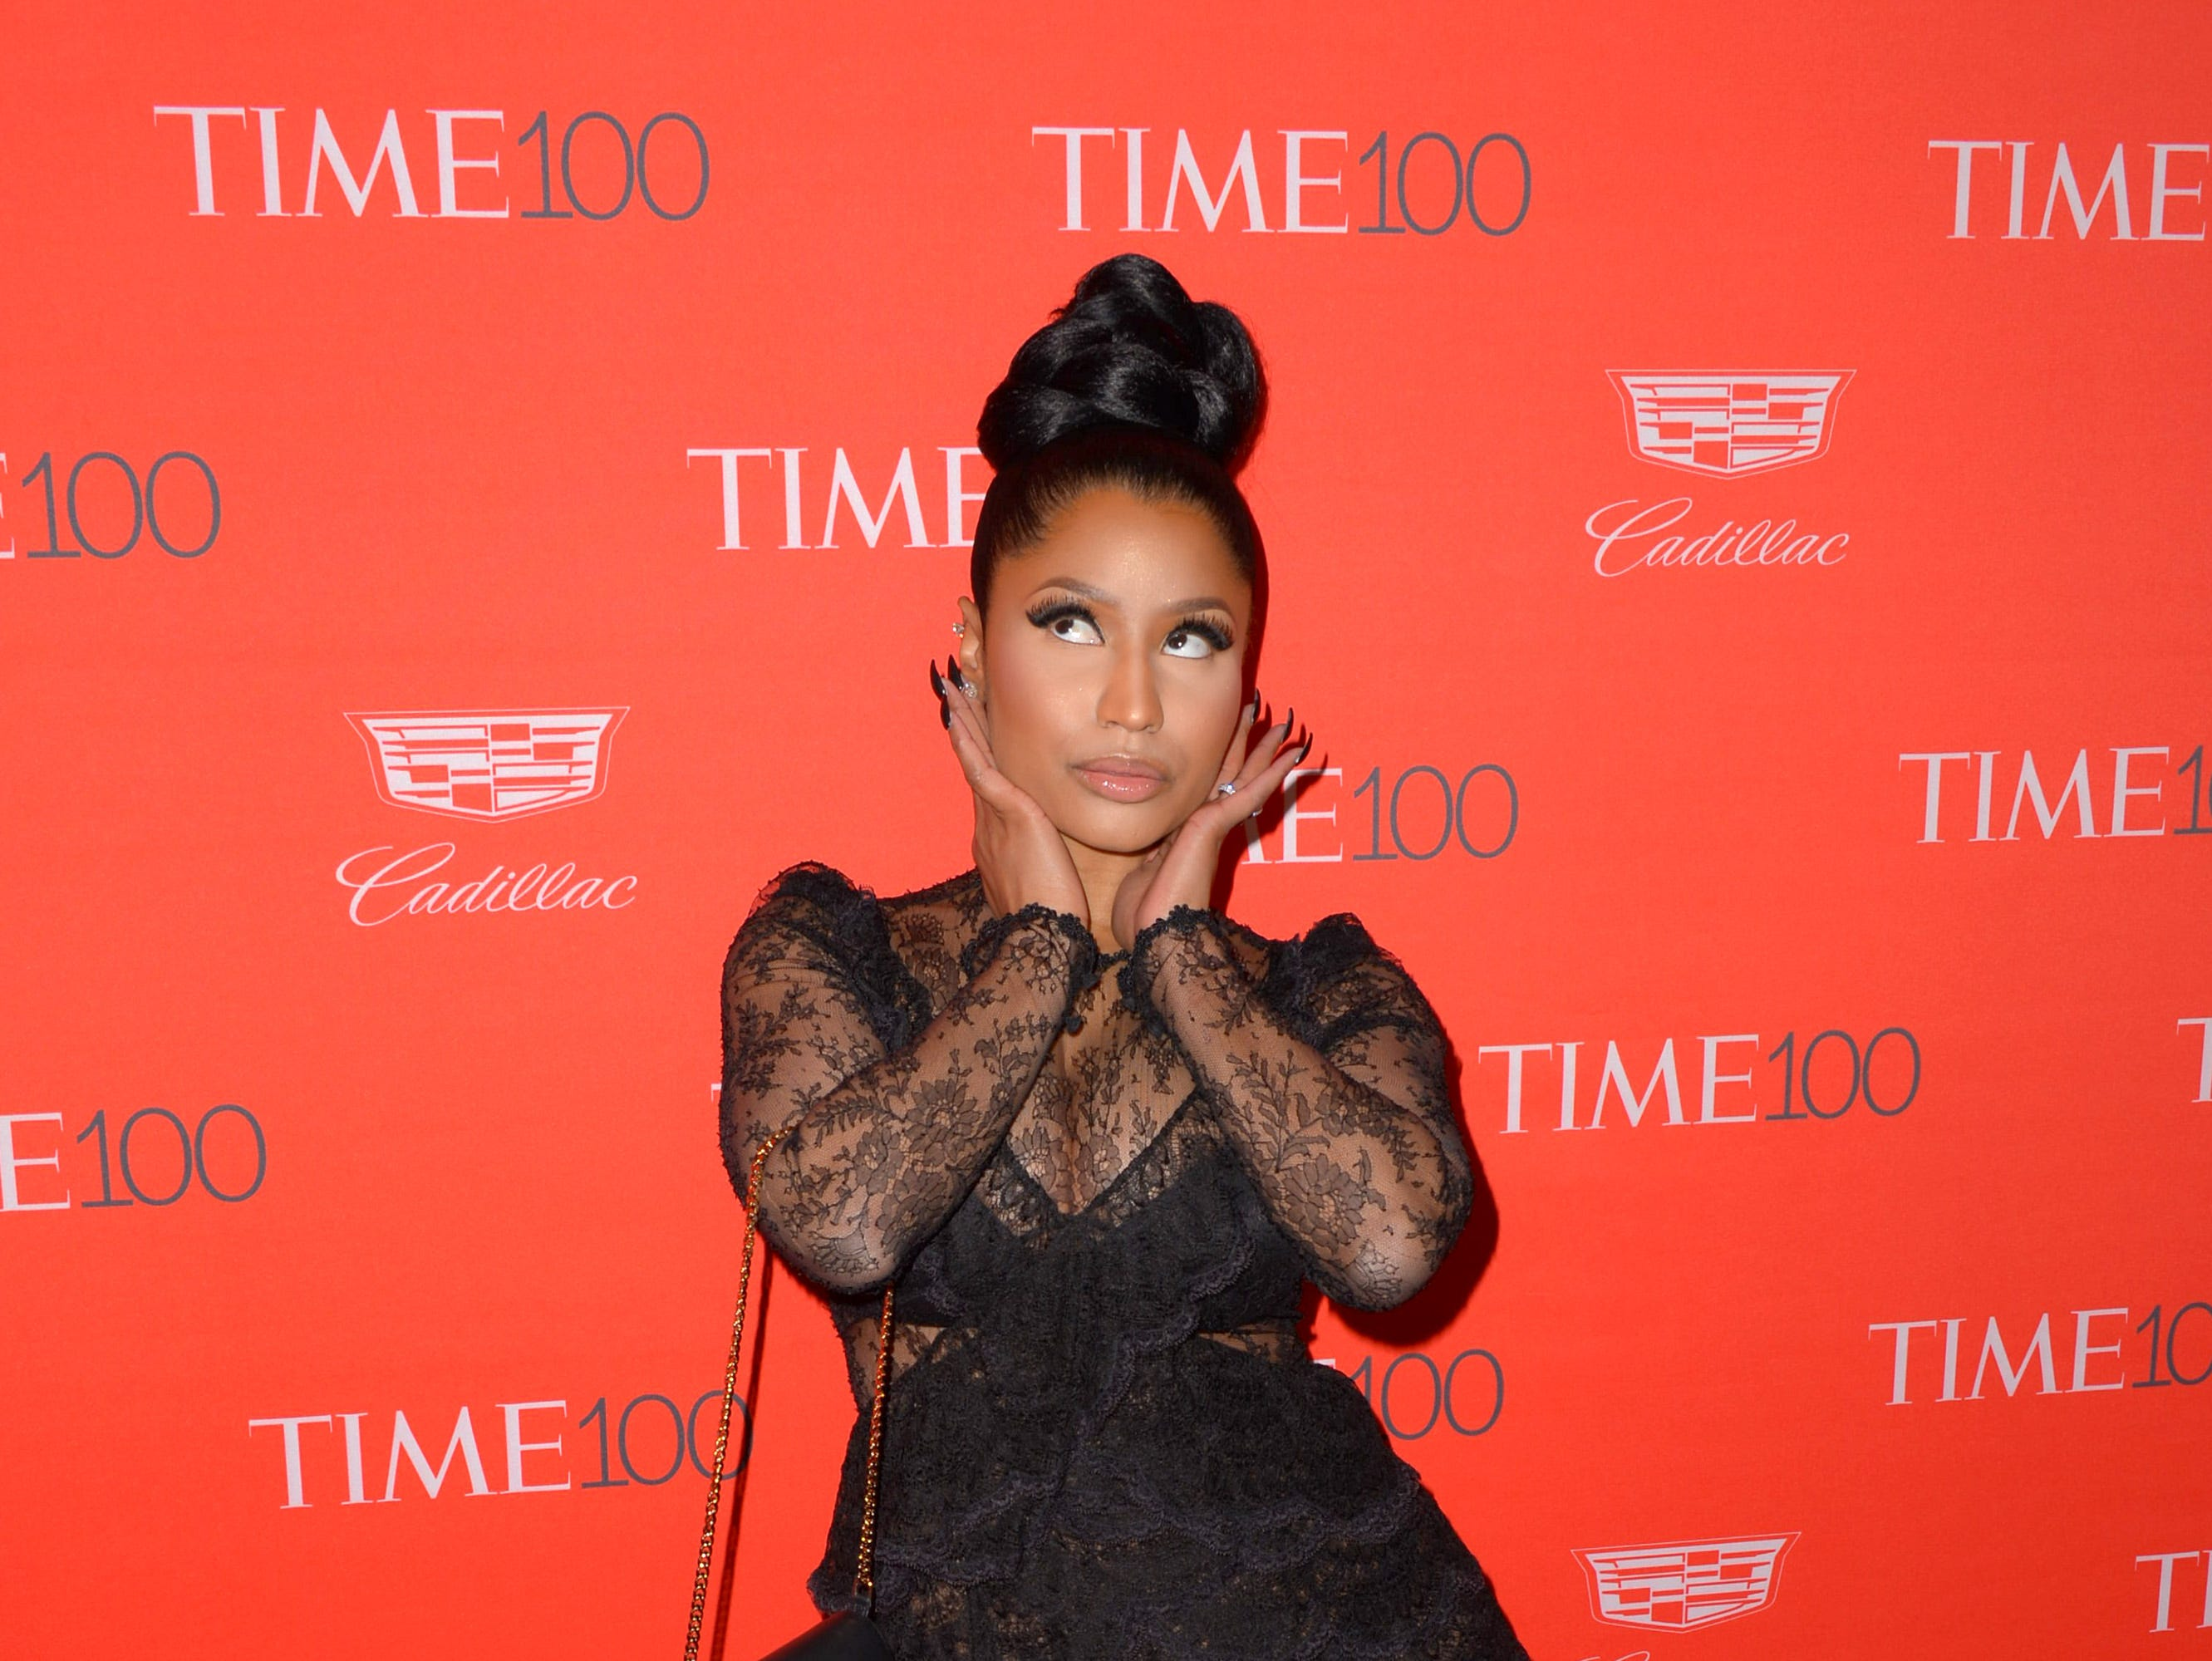 NEW YORK, NY - APRIL 26:  Nicki Minaj attends the 2016 Time 100 Gala at Frederick P. Rose Hall, Jazz at Lincoln Center on April 26, 2016 in New York City.  (Photo by Andrew Toth/FilmMagic) ORG XMIT: 633863469 ORIG FILE ID: 524665694